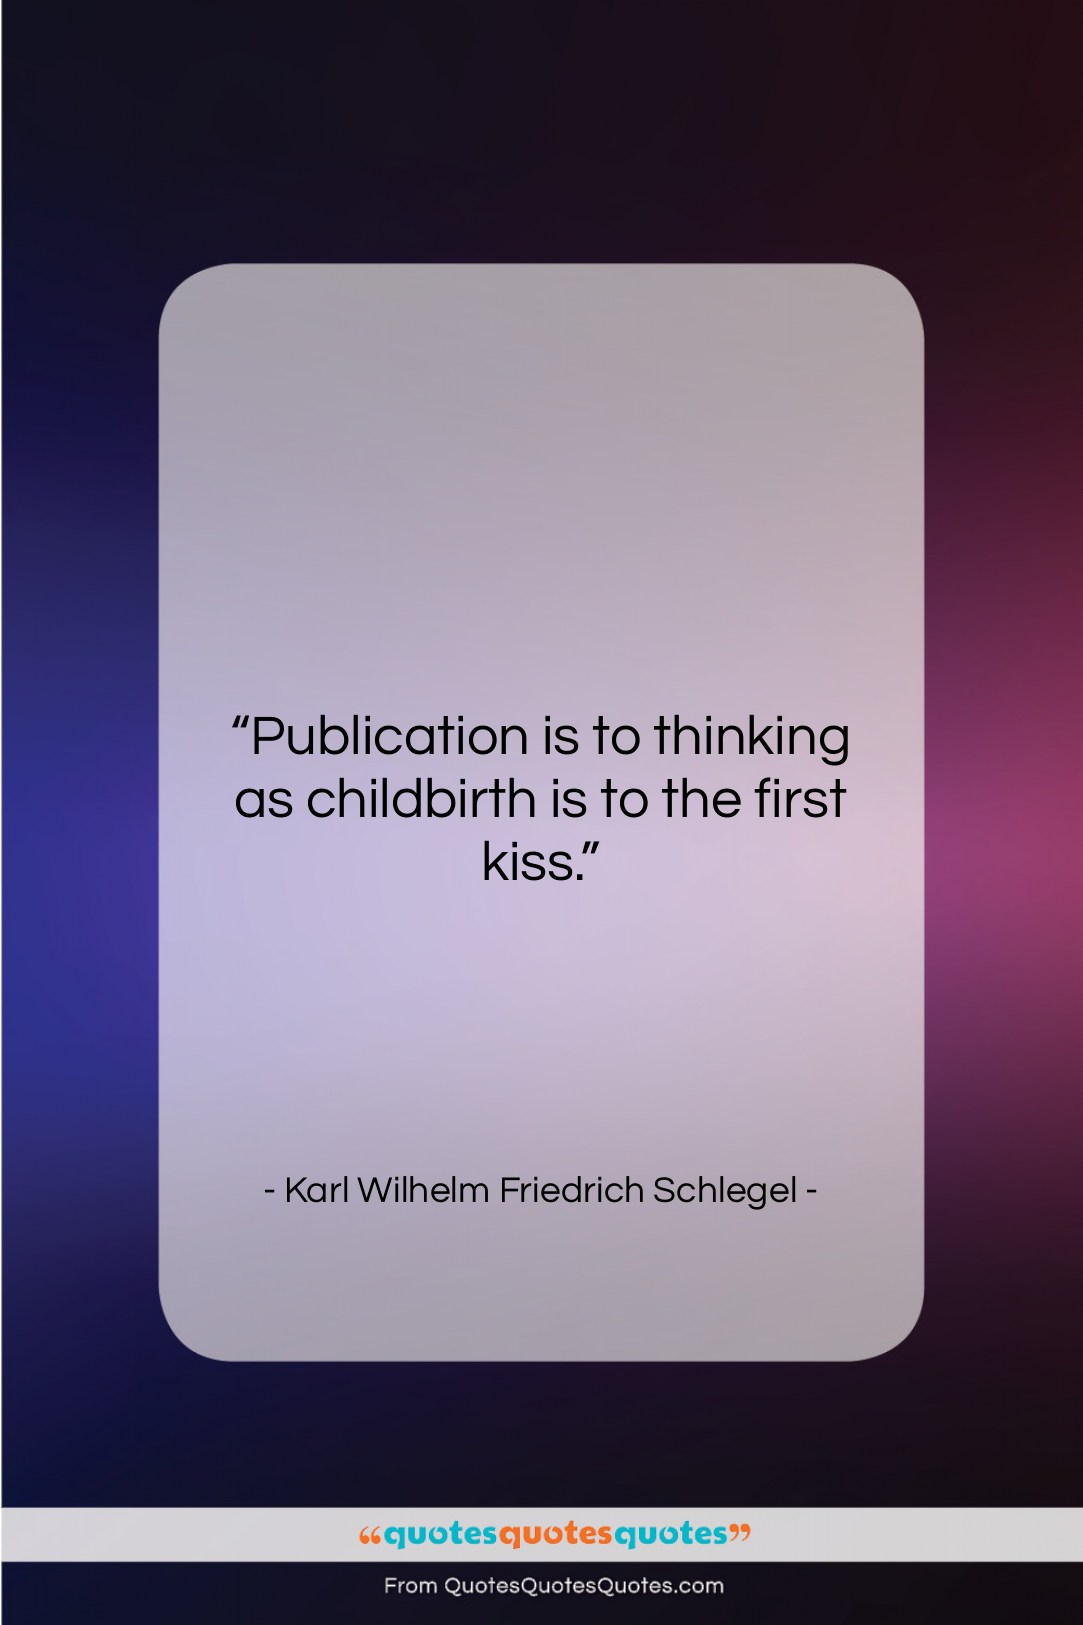 """Karl Wilhelm Friedrich Schlegel quote: """"Publication is to thinking as childbirth is…""""- at QuotesQuotesQuotes.com"""